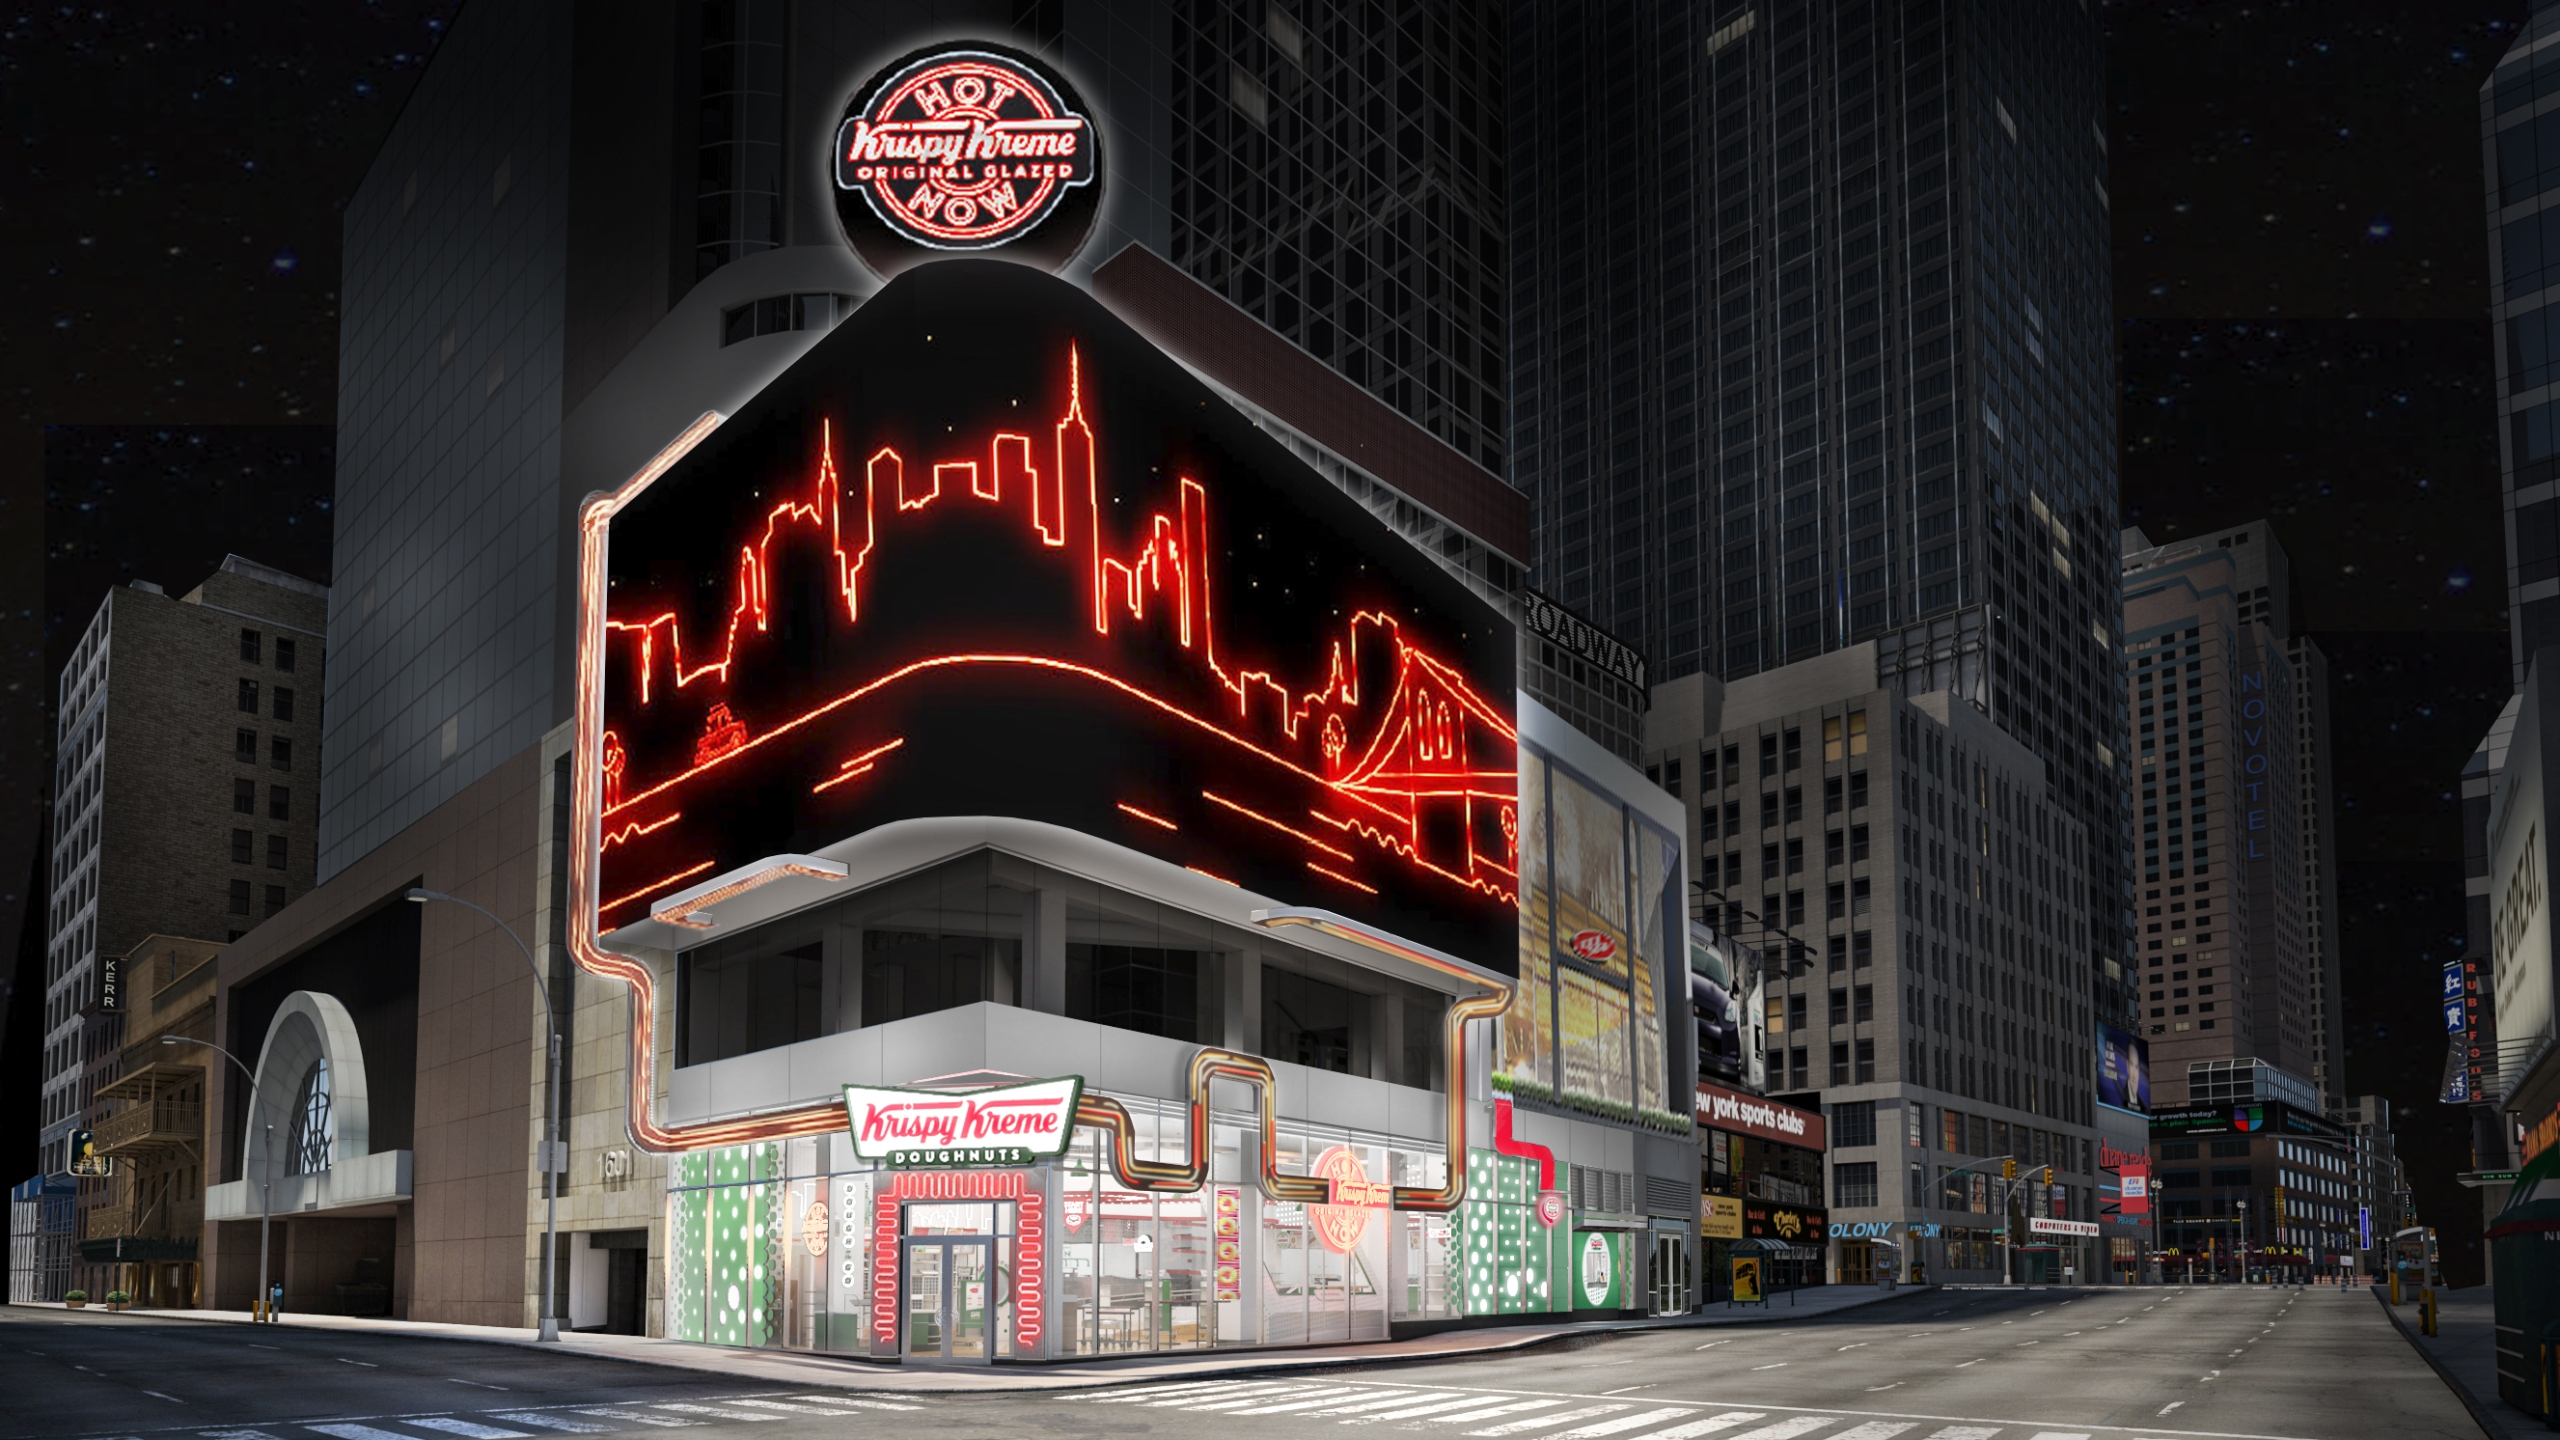 A rendering shows Krispy Kreme's planned Times Square flagship store that's slated to open in early 2020.